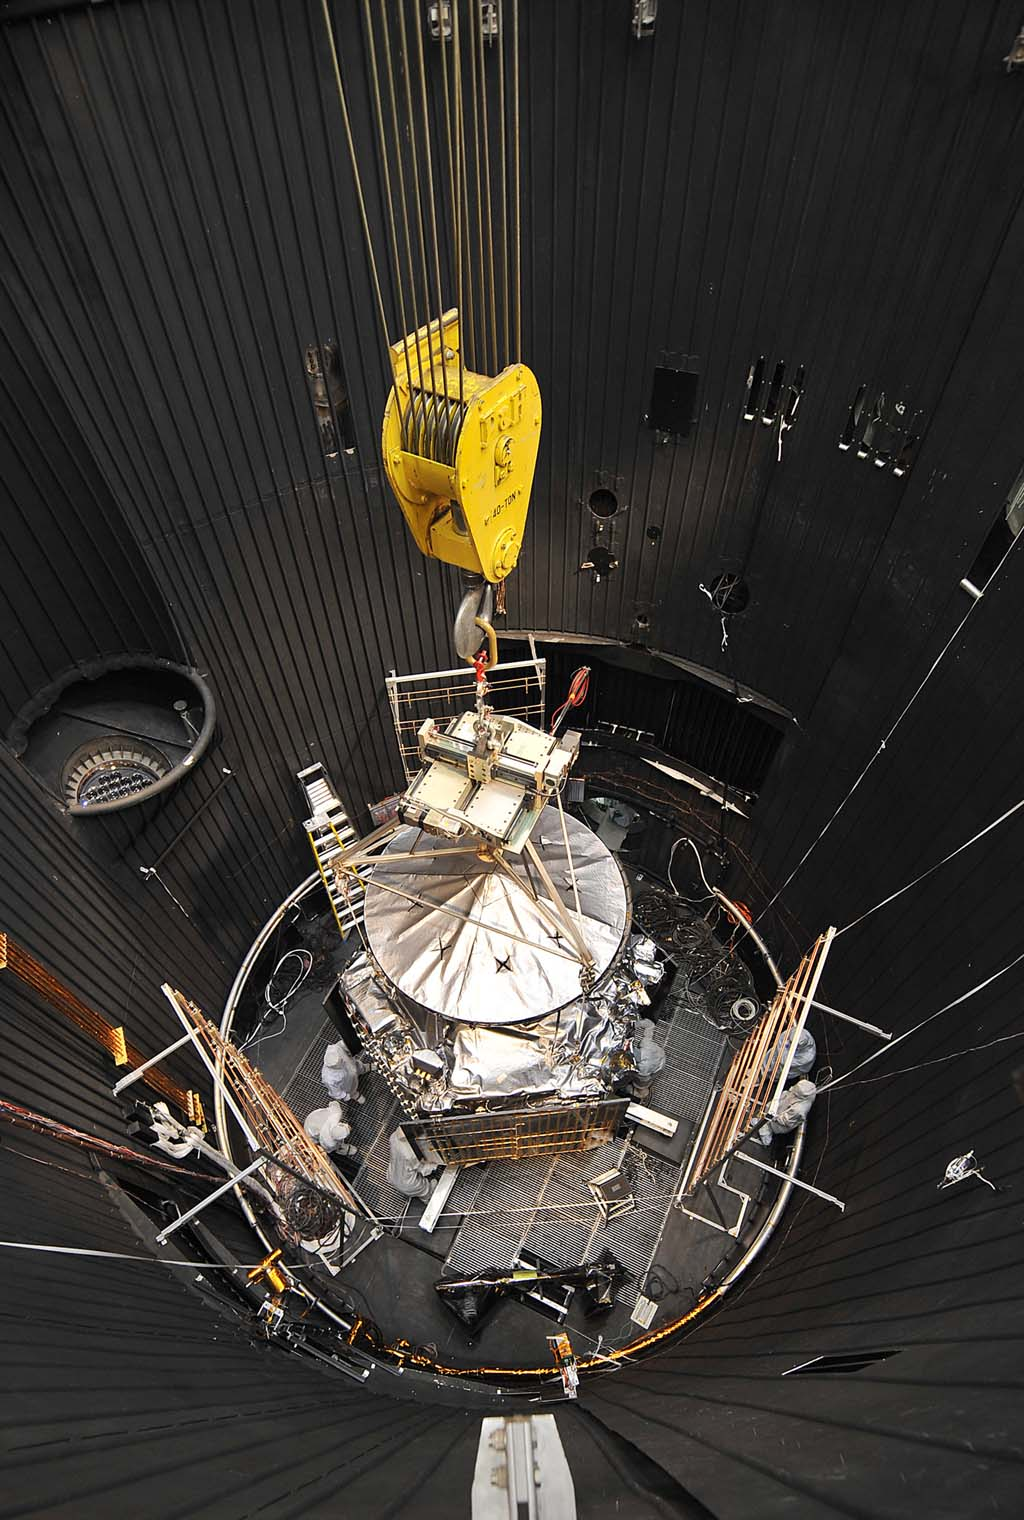 NASA's Juno spacecraft is readied for lifting out of a thermal vacuum chamber following testing to simulate the environment of space over the range of conditions the probe will encounter during its mission.